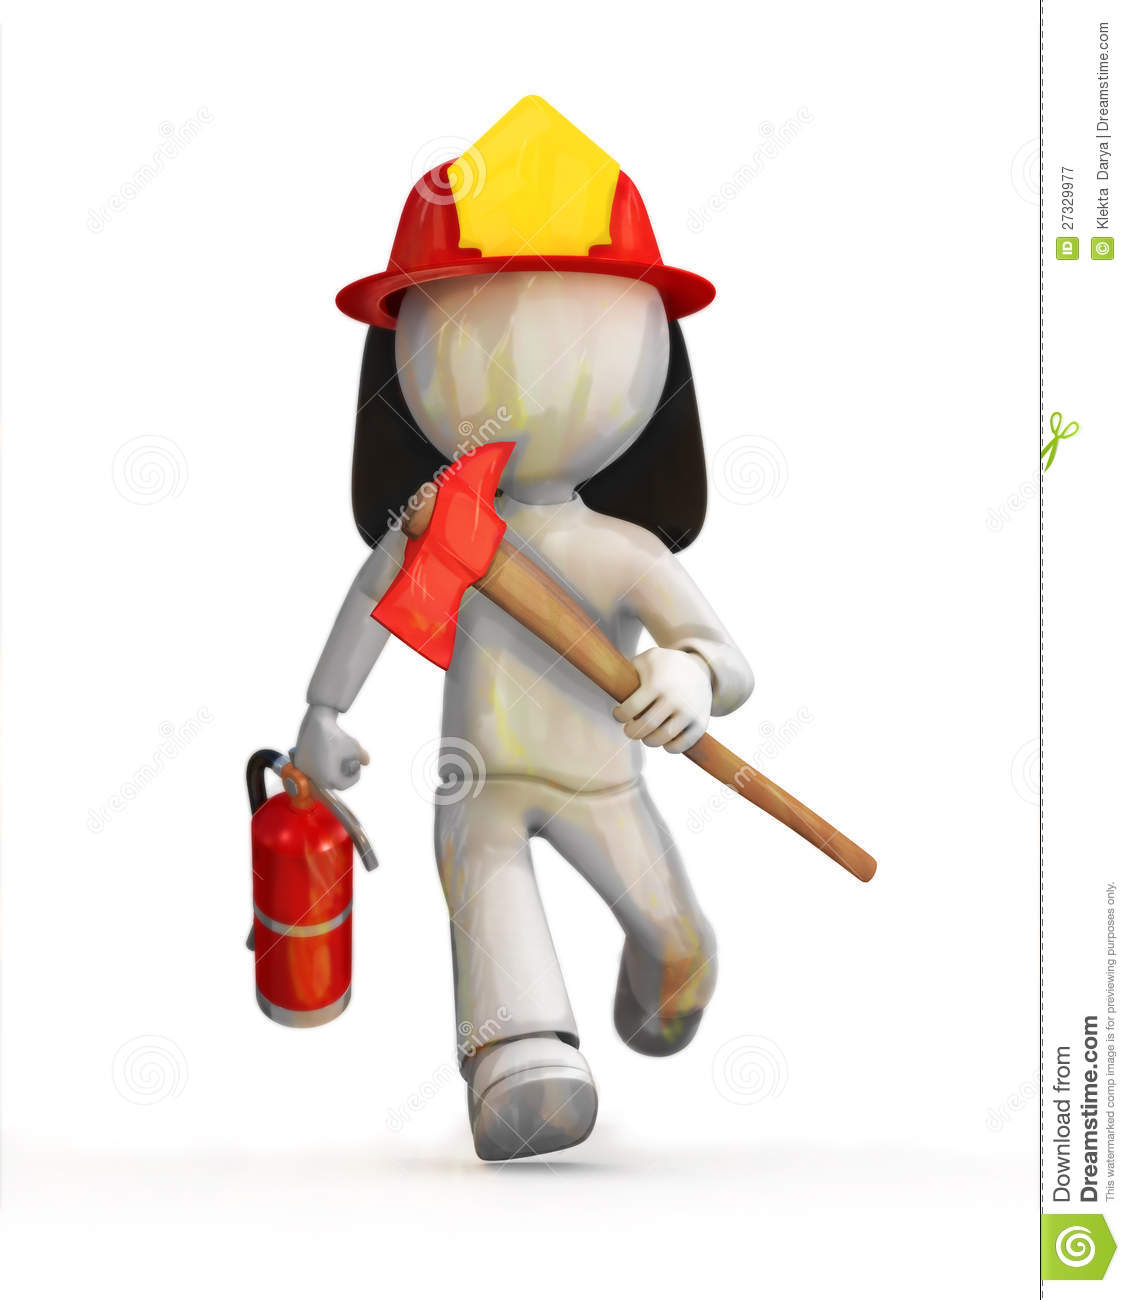 3d illustration of cartoon fire fighter or fireman with helmet and ...